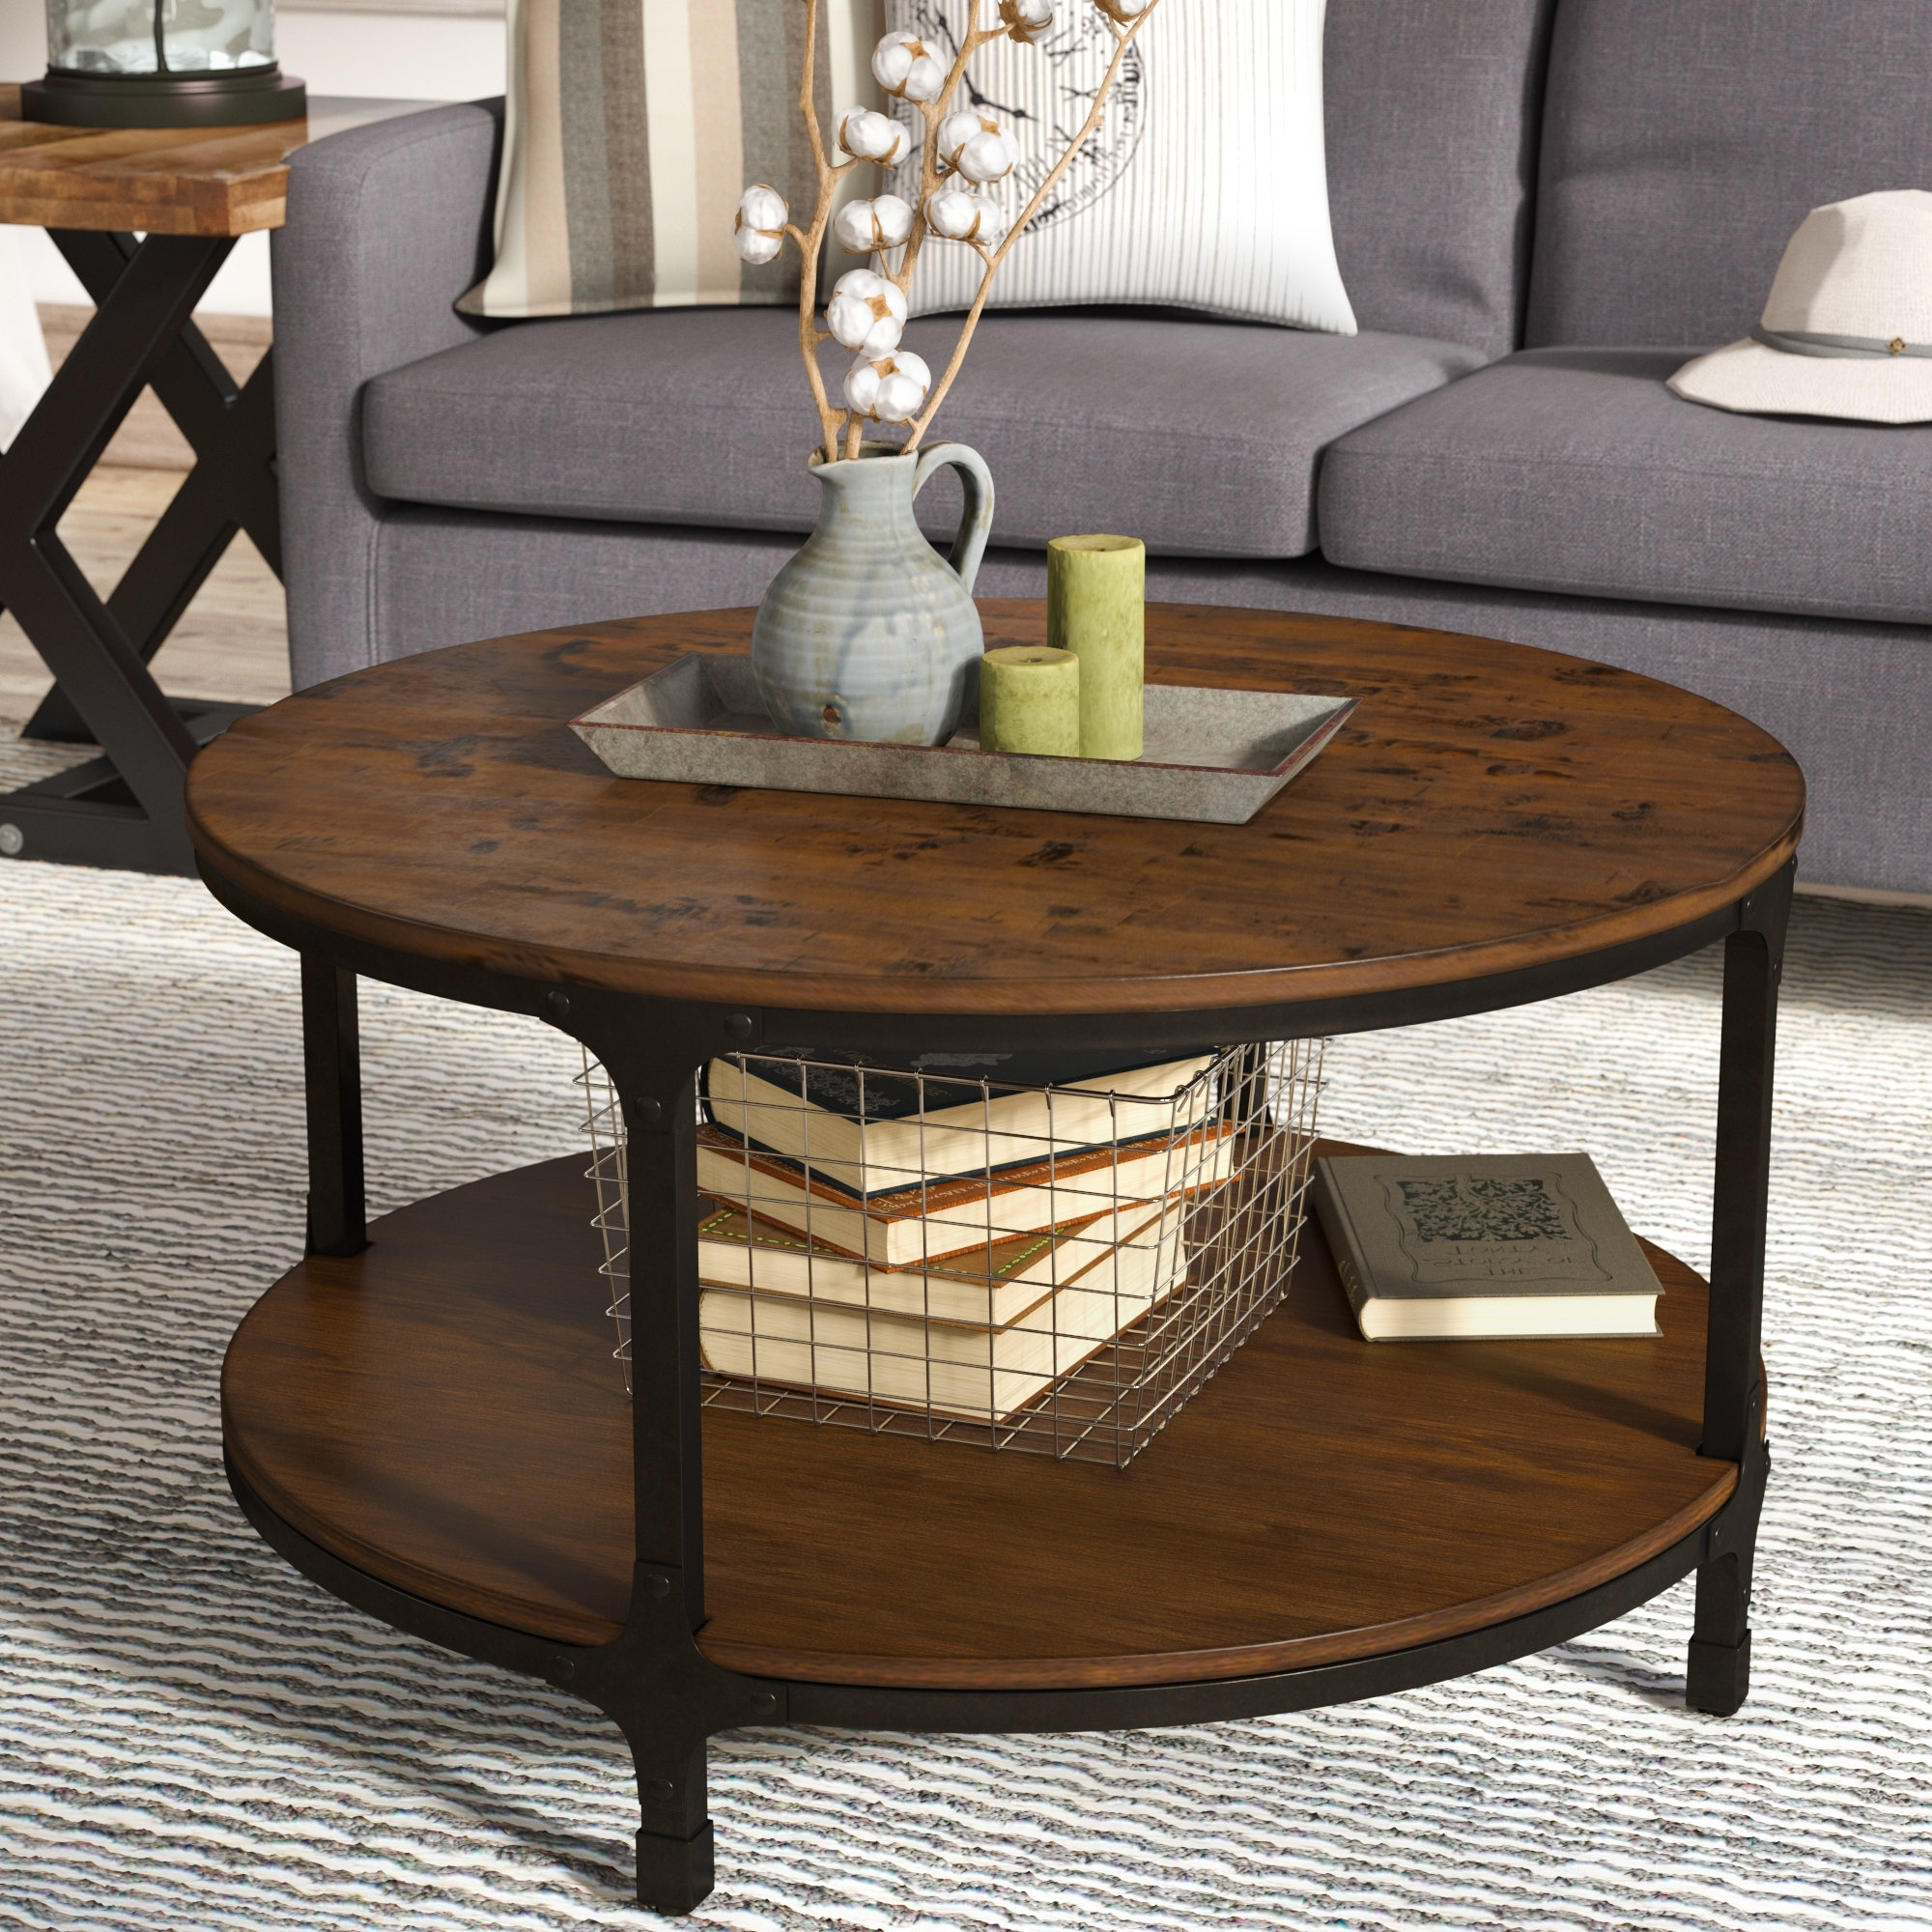 Wayfair Throughout Best And Newest Go Cart White Rolling Coffee Tables (View 17 of 20)